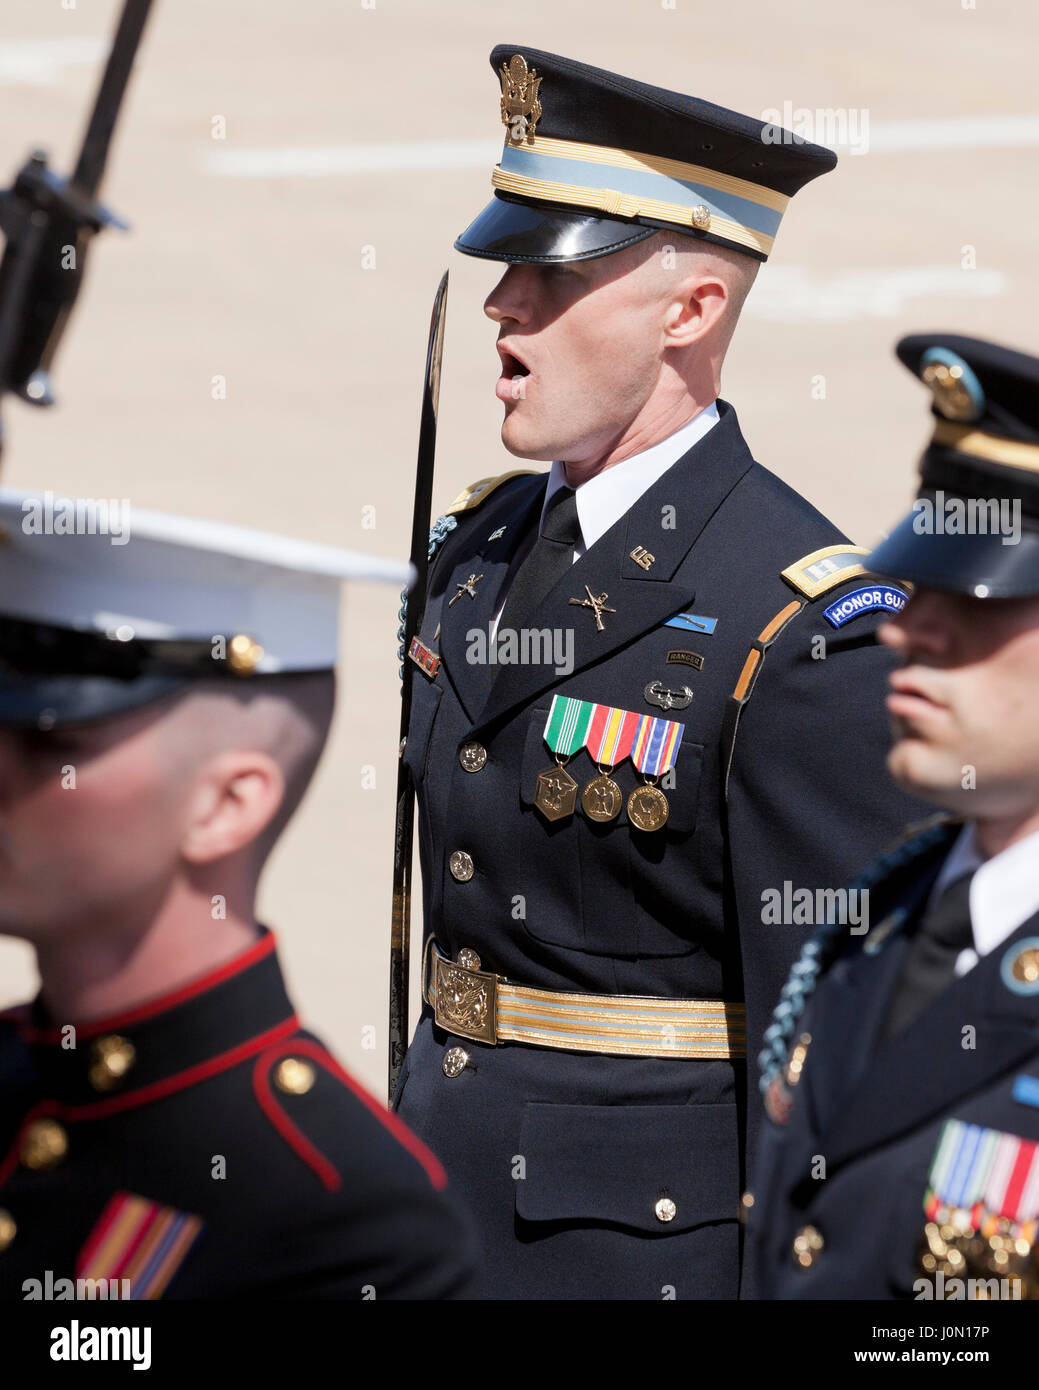 US Army Officer in Joint Service Honor Cordon at The Pentagon - Washington, DC USA - Stock Image